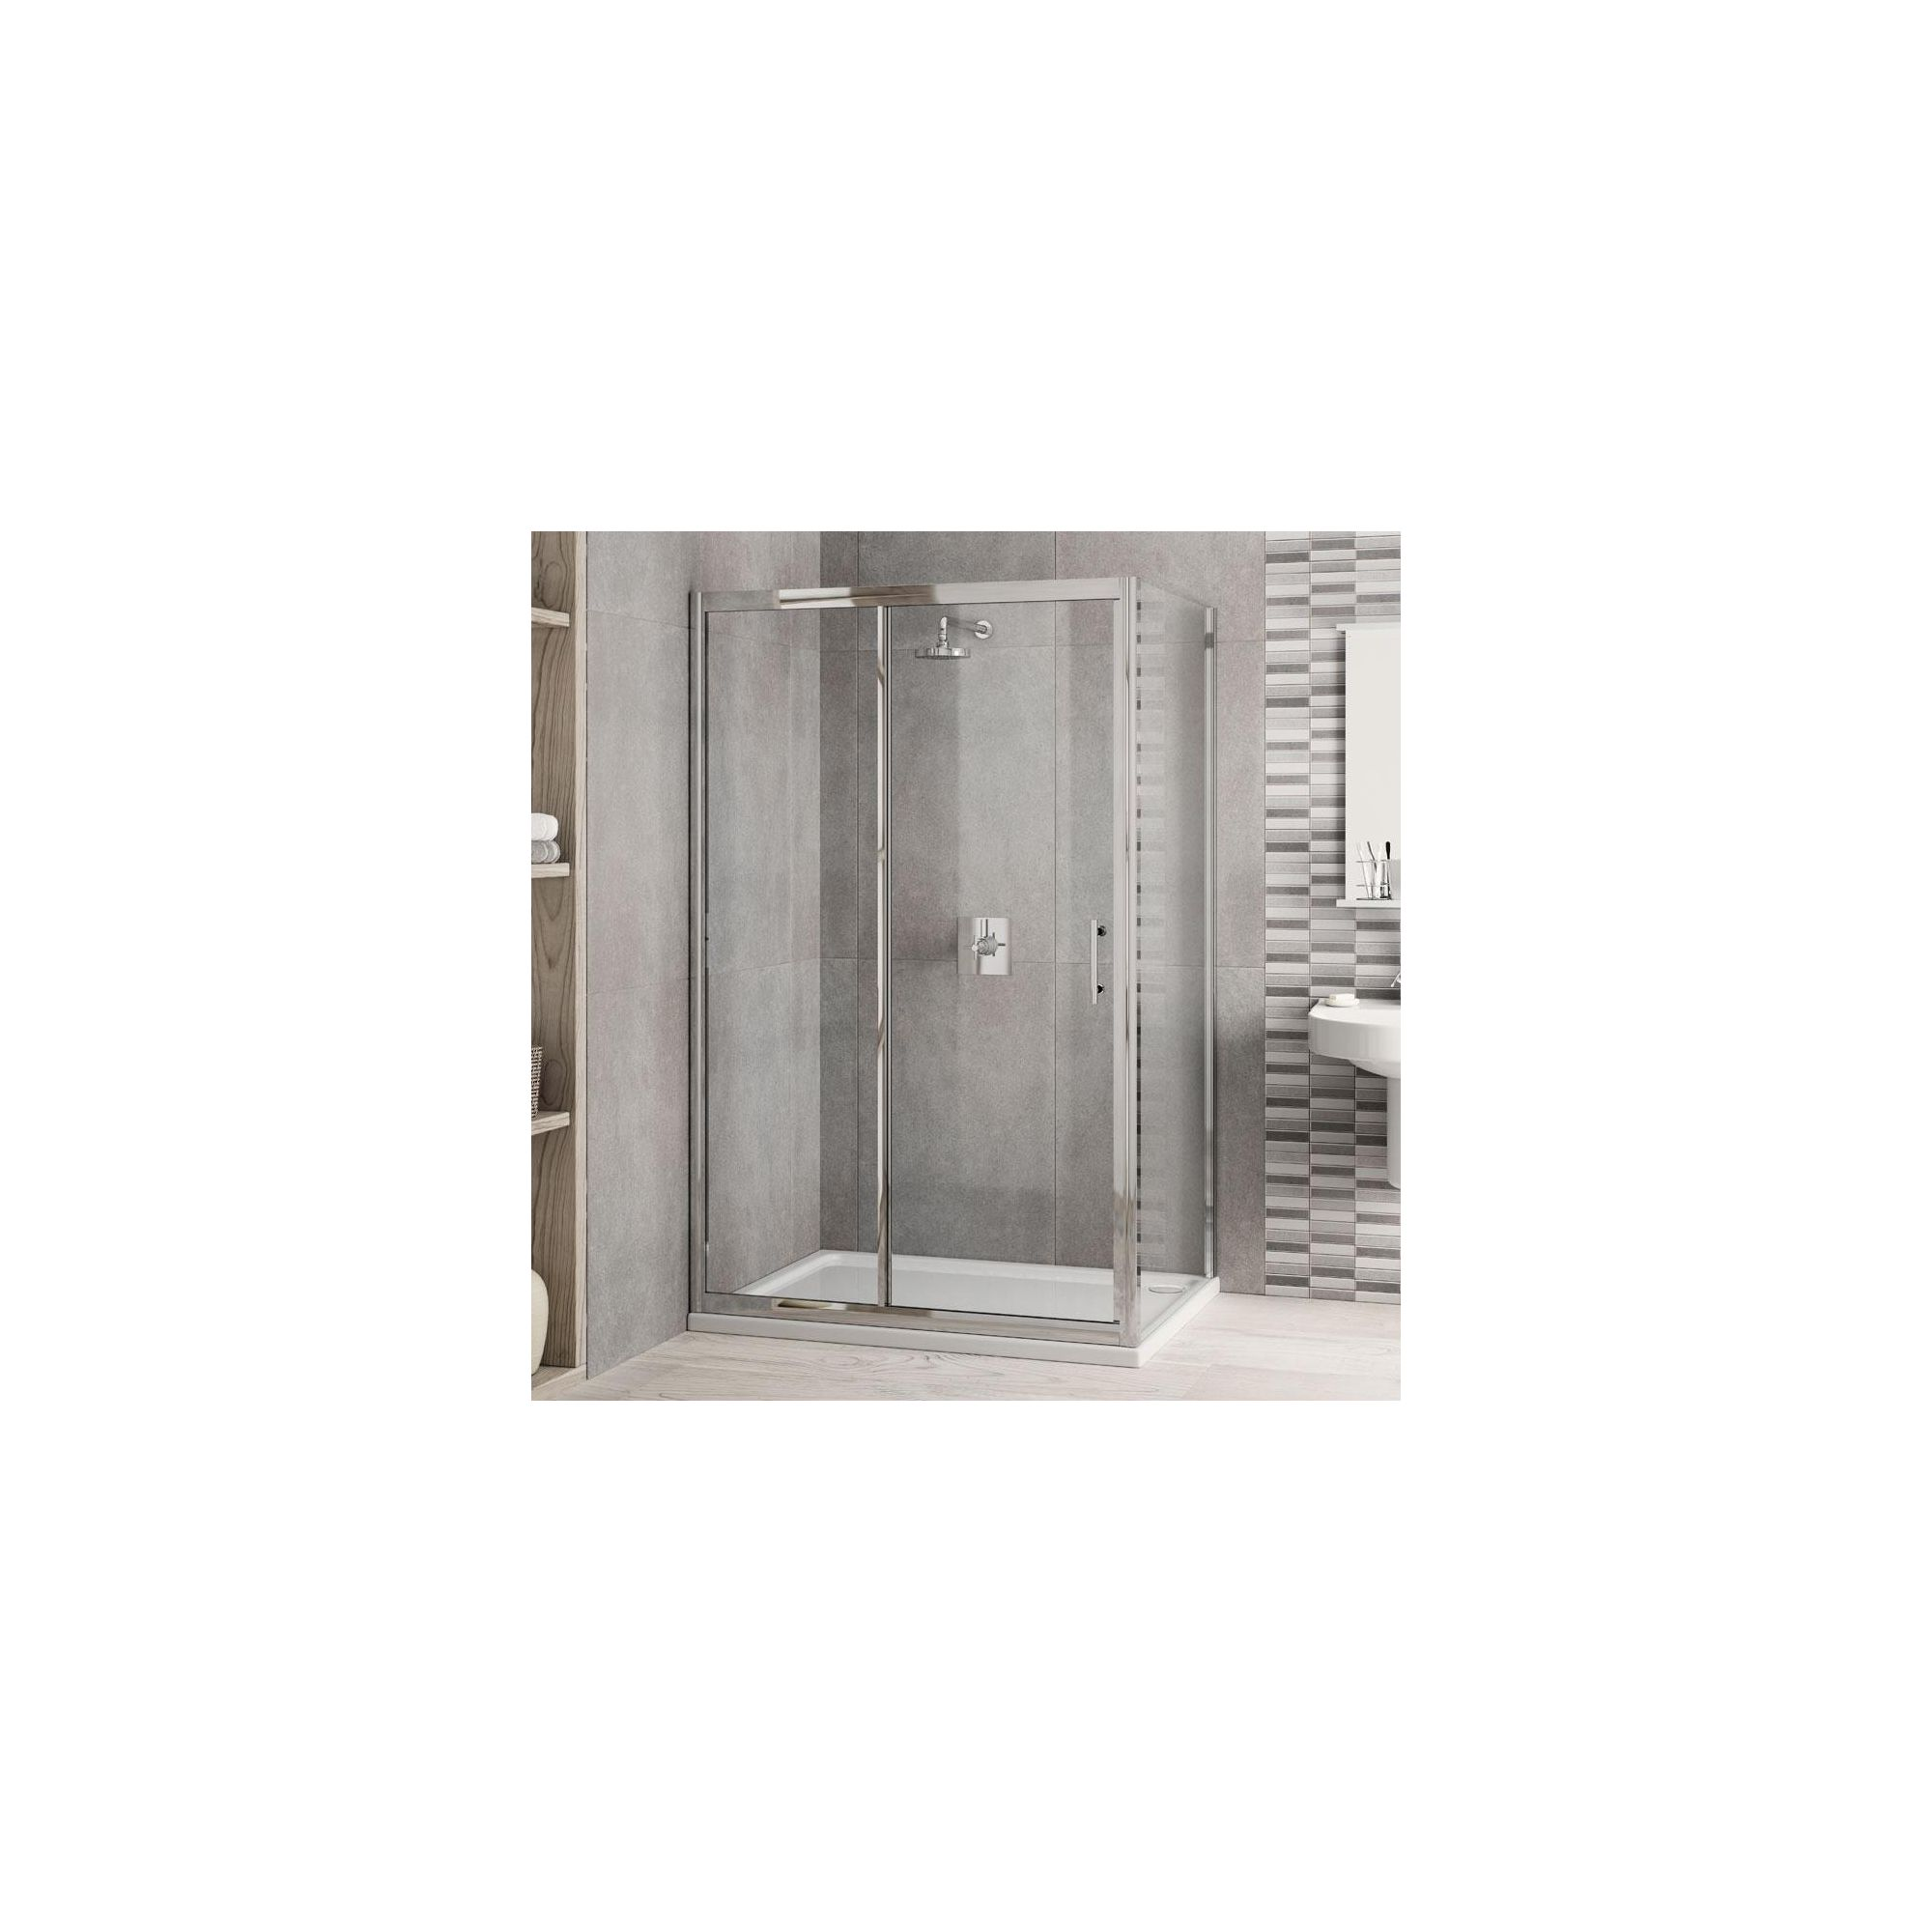 Elemis Inspire Two-Panel Jumbo Sliding Door Shower Enclosure, 1100mm x 800mm, 6mm Glass, Low Profile Tray at Tesco Direct